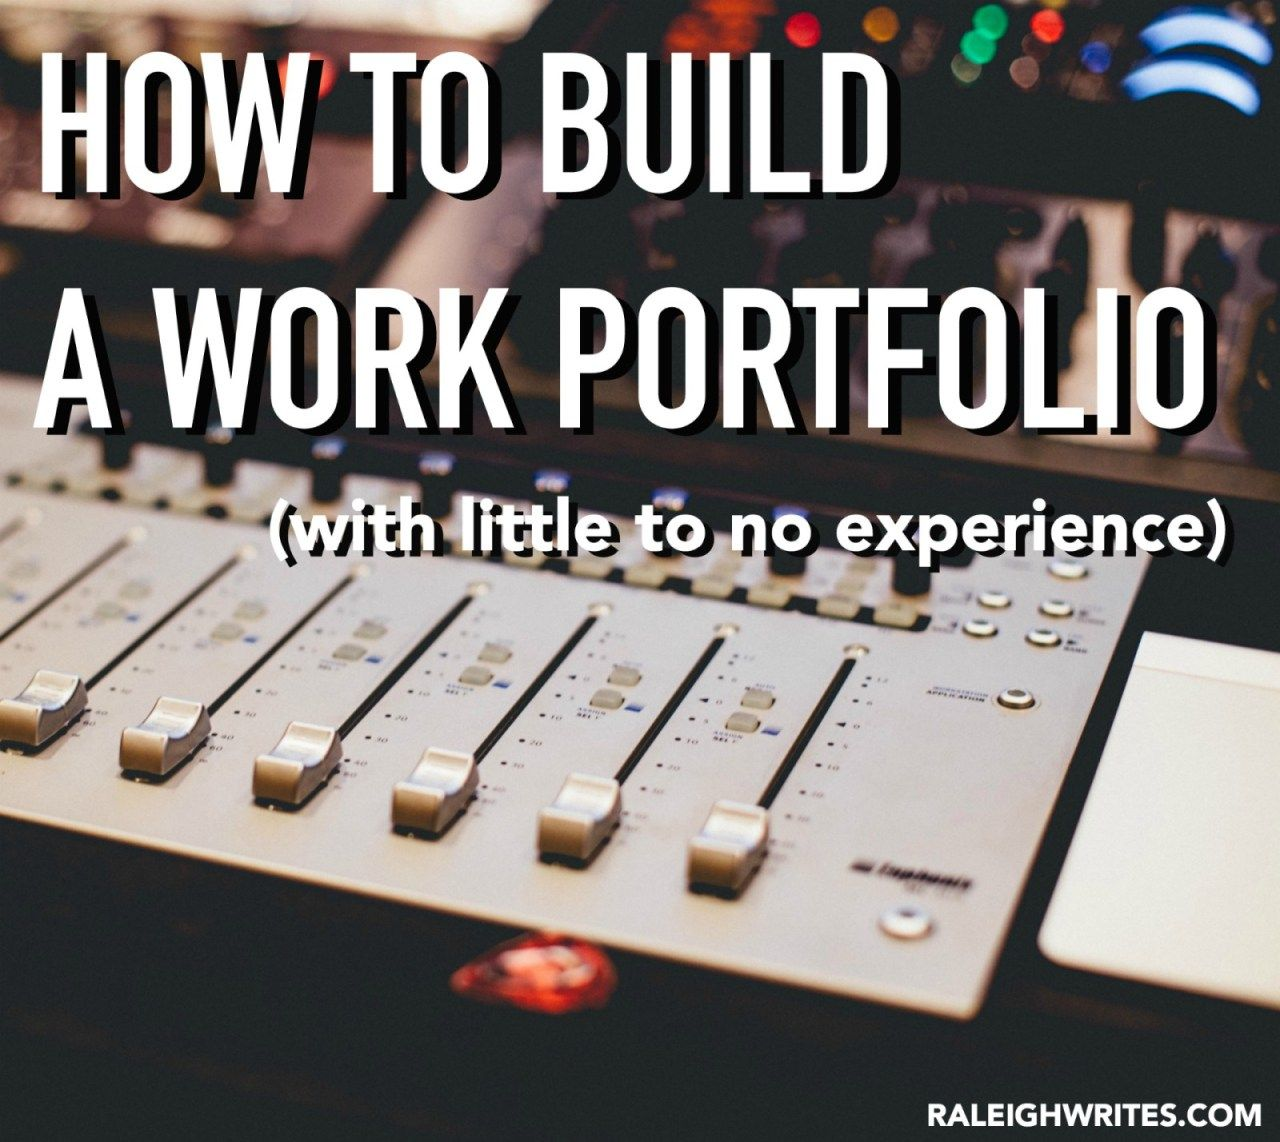 How to build a freelance work portfolio with little to no